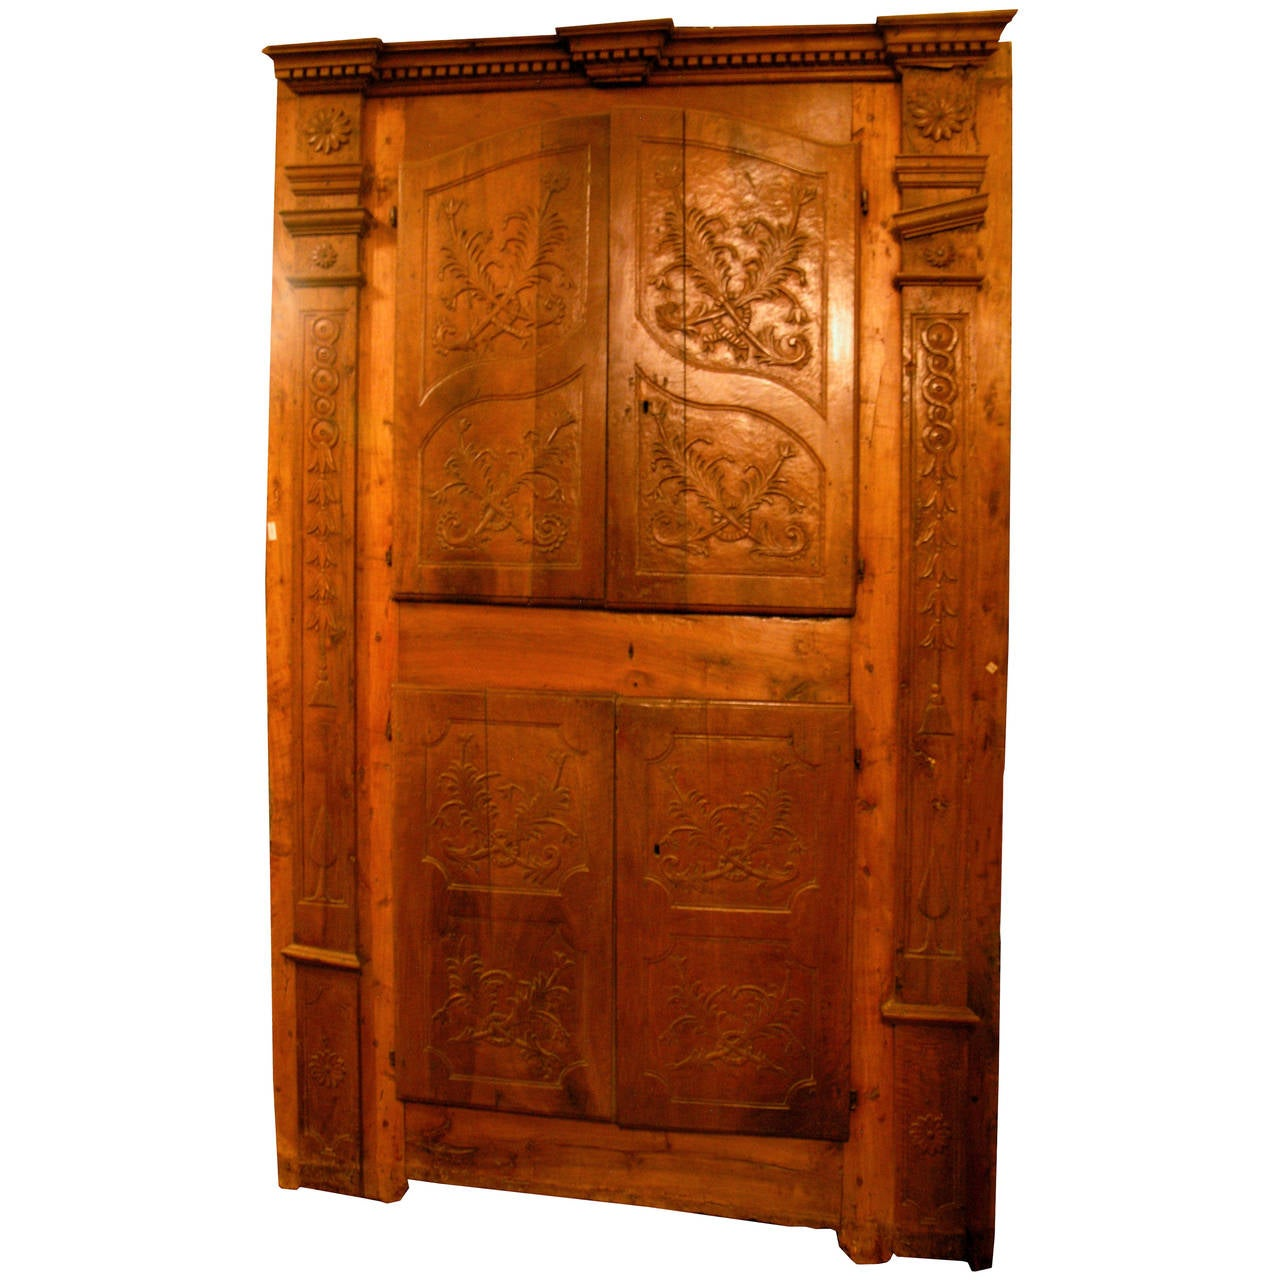 Antique Wall Cabinets Made of Walnut For Sale - Antique Wall Cabinets Made Of Walnut For Sale At 1stdibs